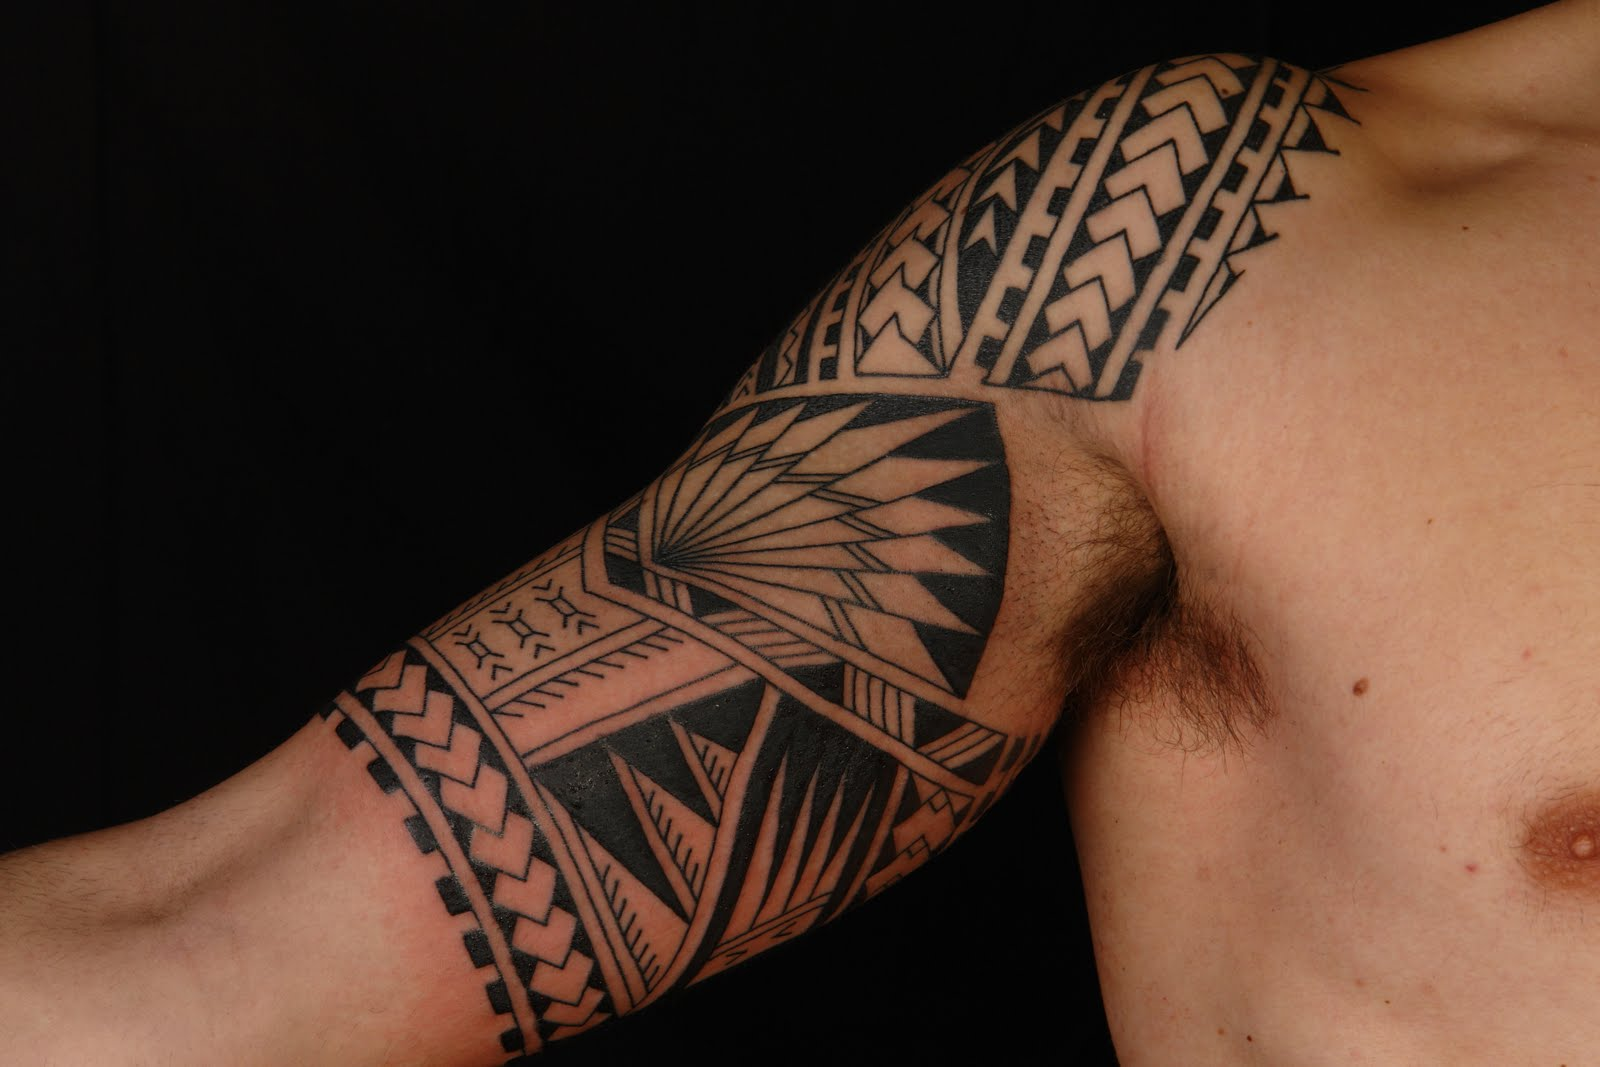 samoan sleeve tattoo tattoo designs collection samoan tattoo the mystery tattoo. Black Bedroom Furniture Sets. Home Design Ideas